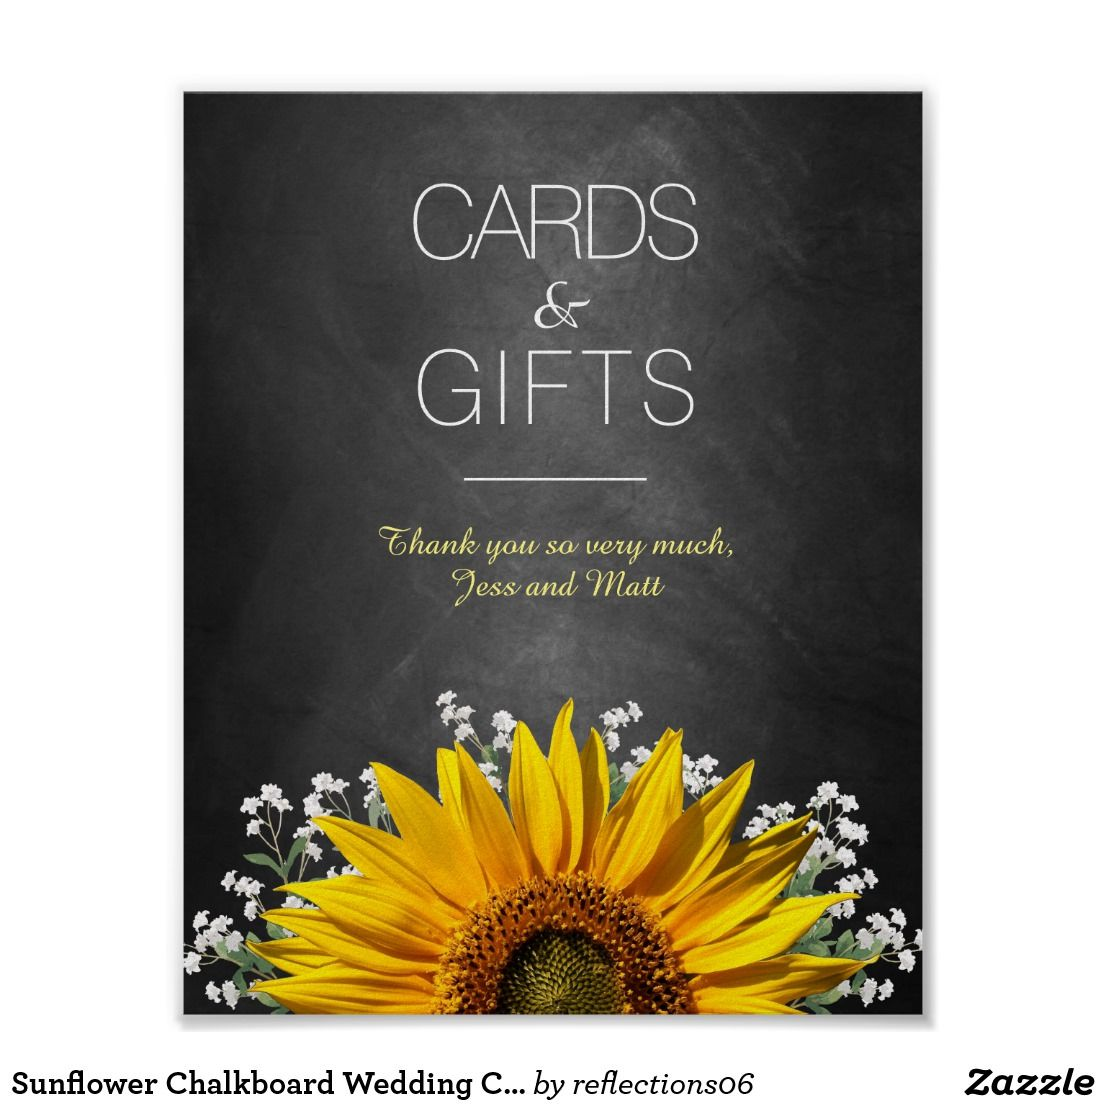 Sunflower Chalkboard Wedding Cards and Gifts Sign Zazzle